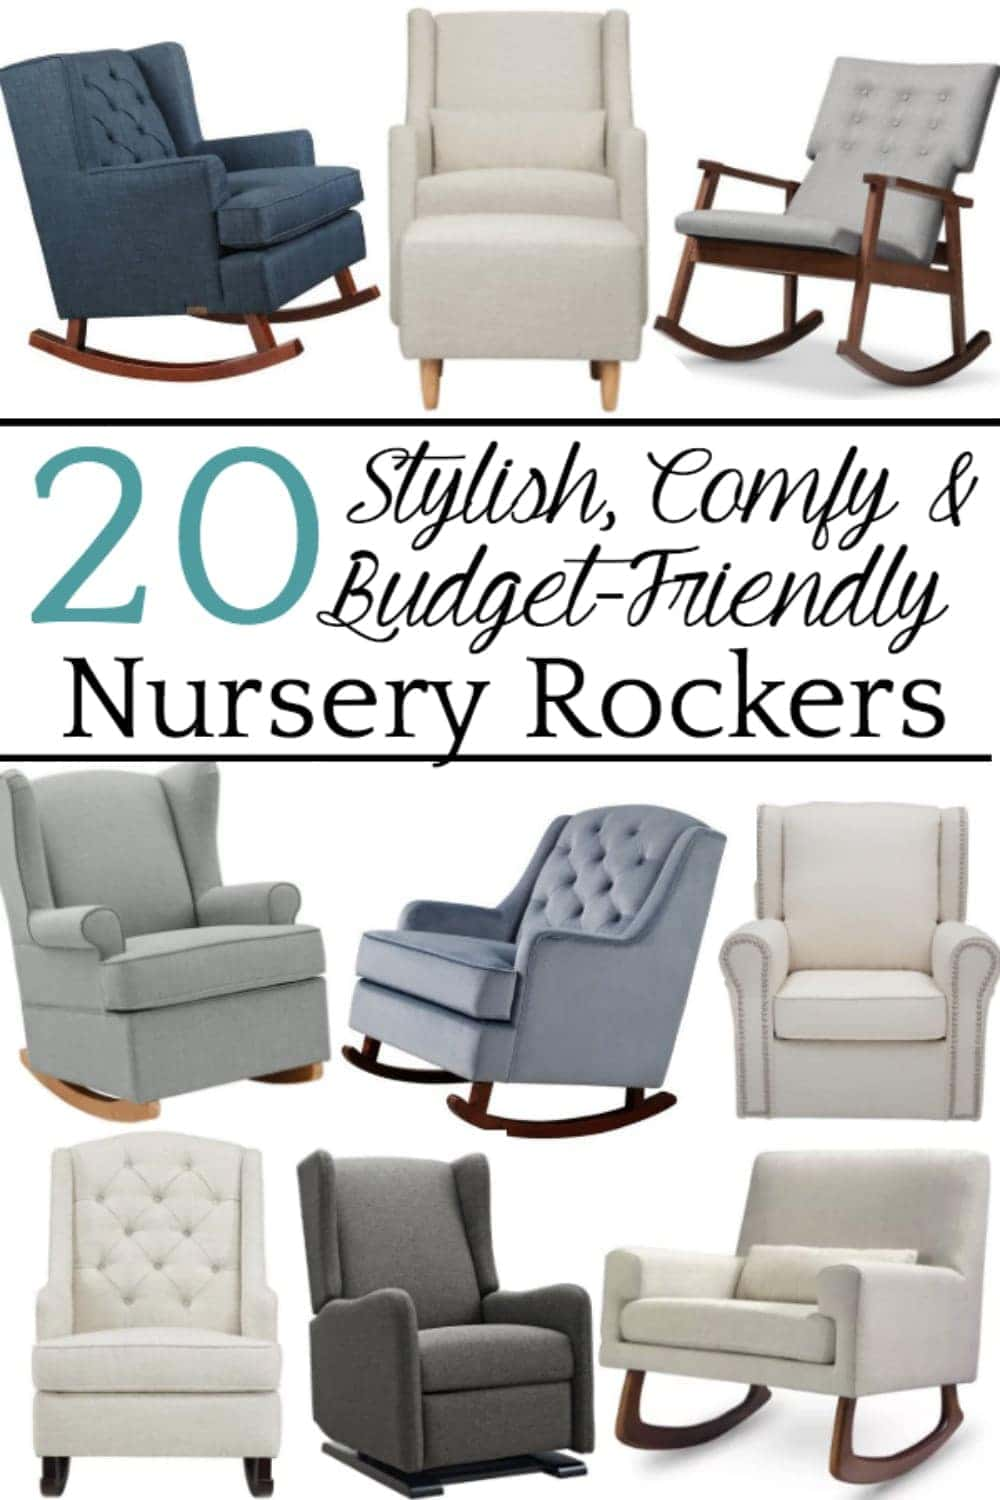 A round-up shopping guide with the highest rated nursery gliders and rocking chairs that have a designer look for less than half the price. #nurseryglider #nurseryrockingchair #nurseryrocker #nursery #nurseryplanning #nurserydecor